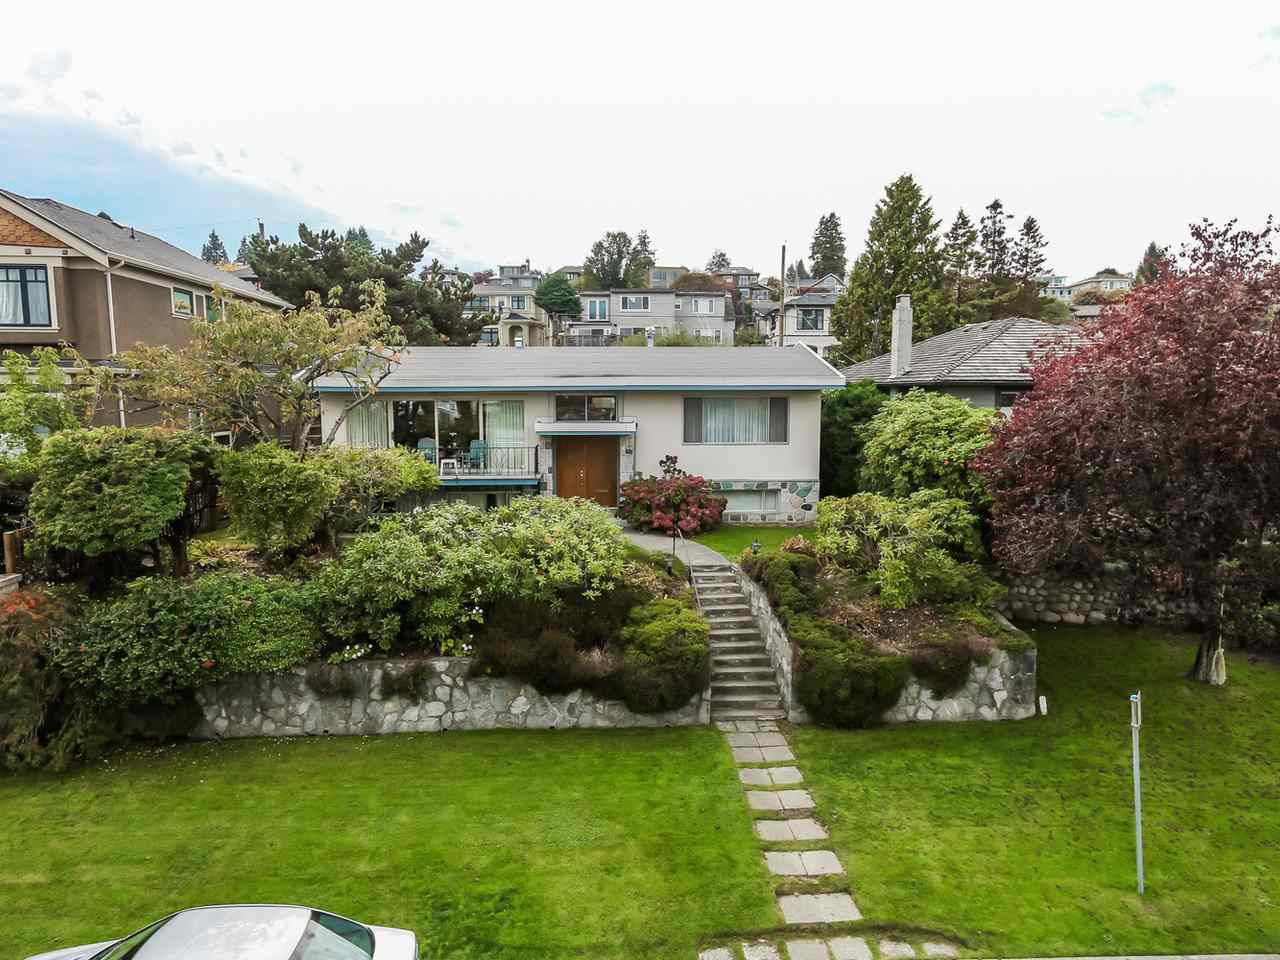 Main Photo: 4709 HAGGART STREET in Vancouver: Quilchena House for sale (Vancouver West)  : MLS®# R2006969